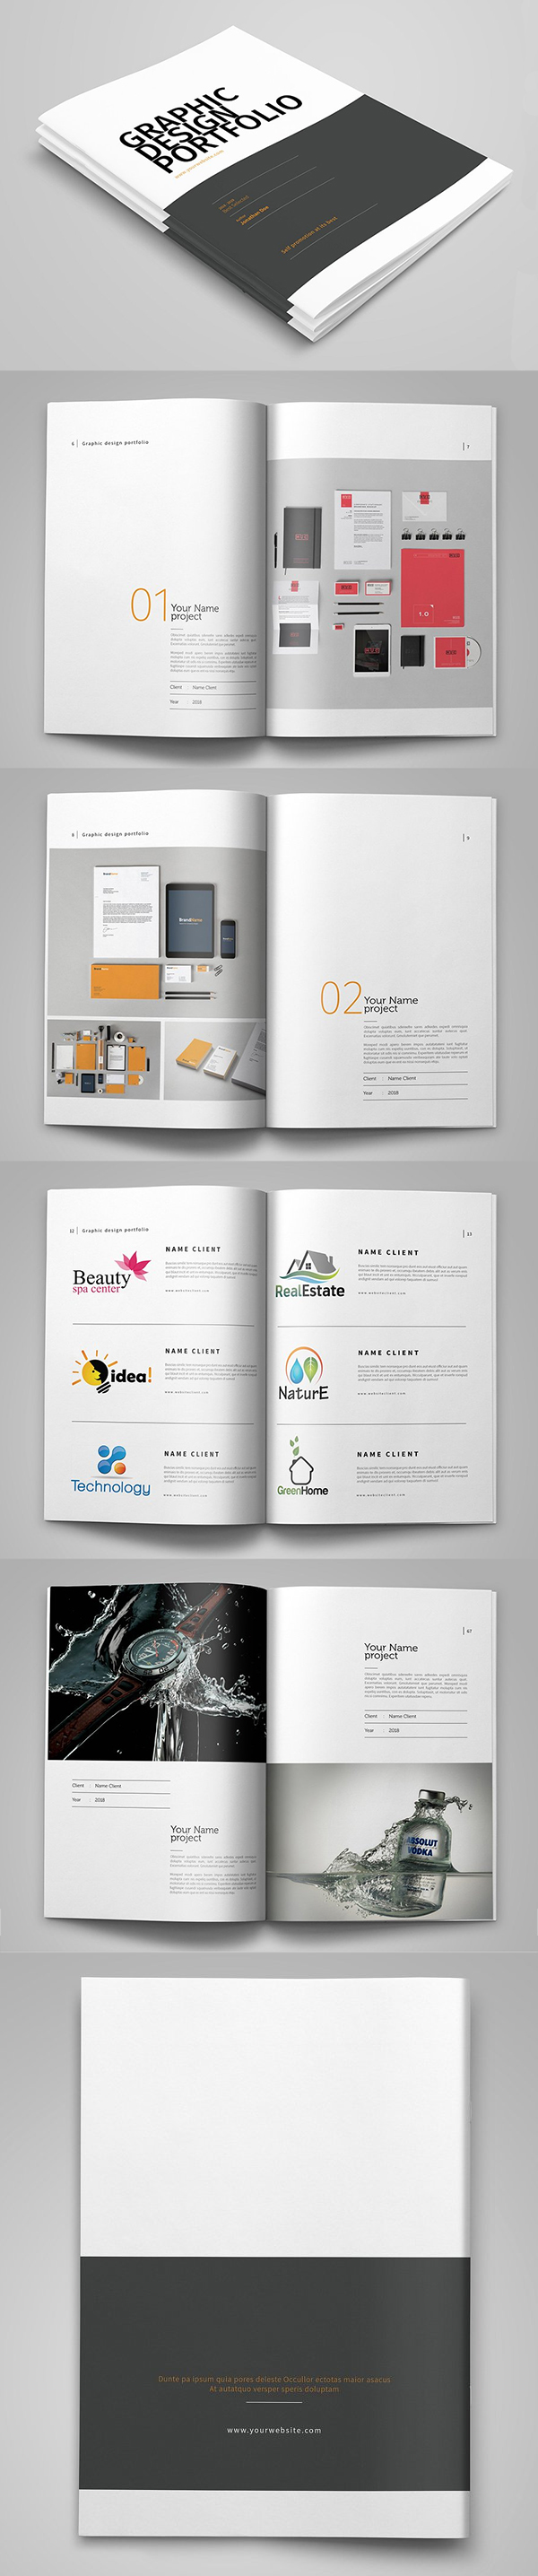 100 Professional Corporate Brochure Templates - 77